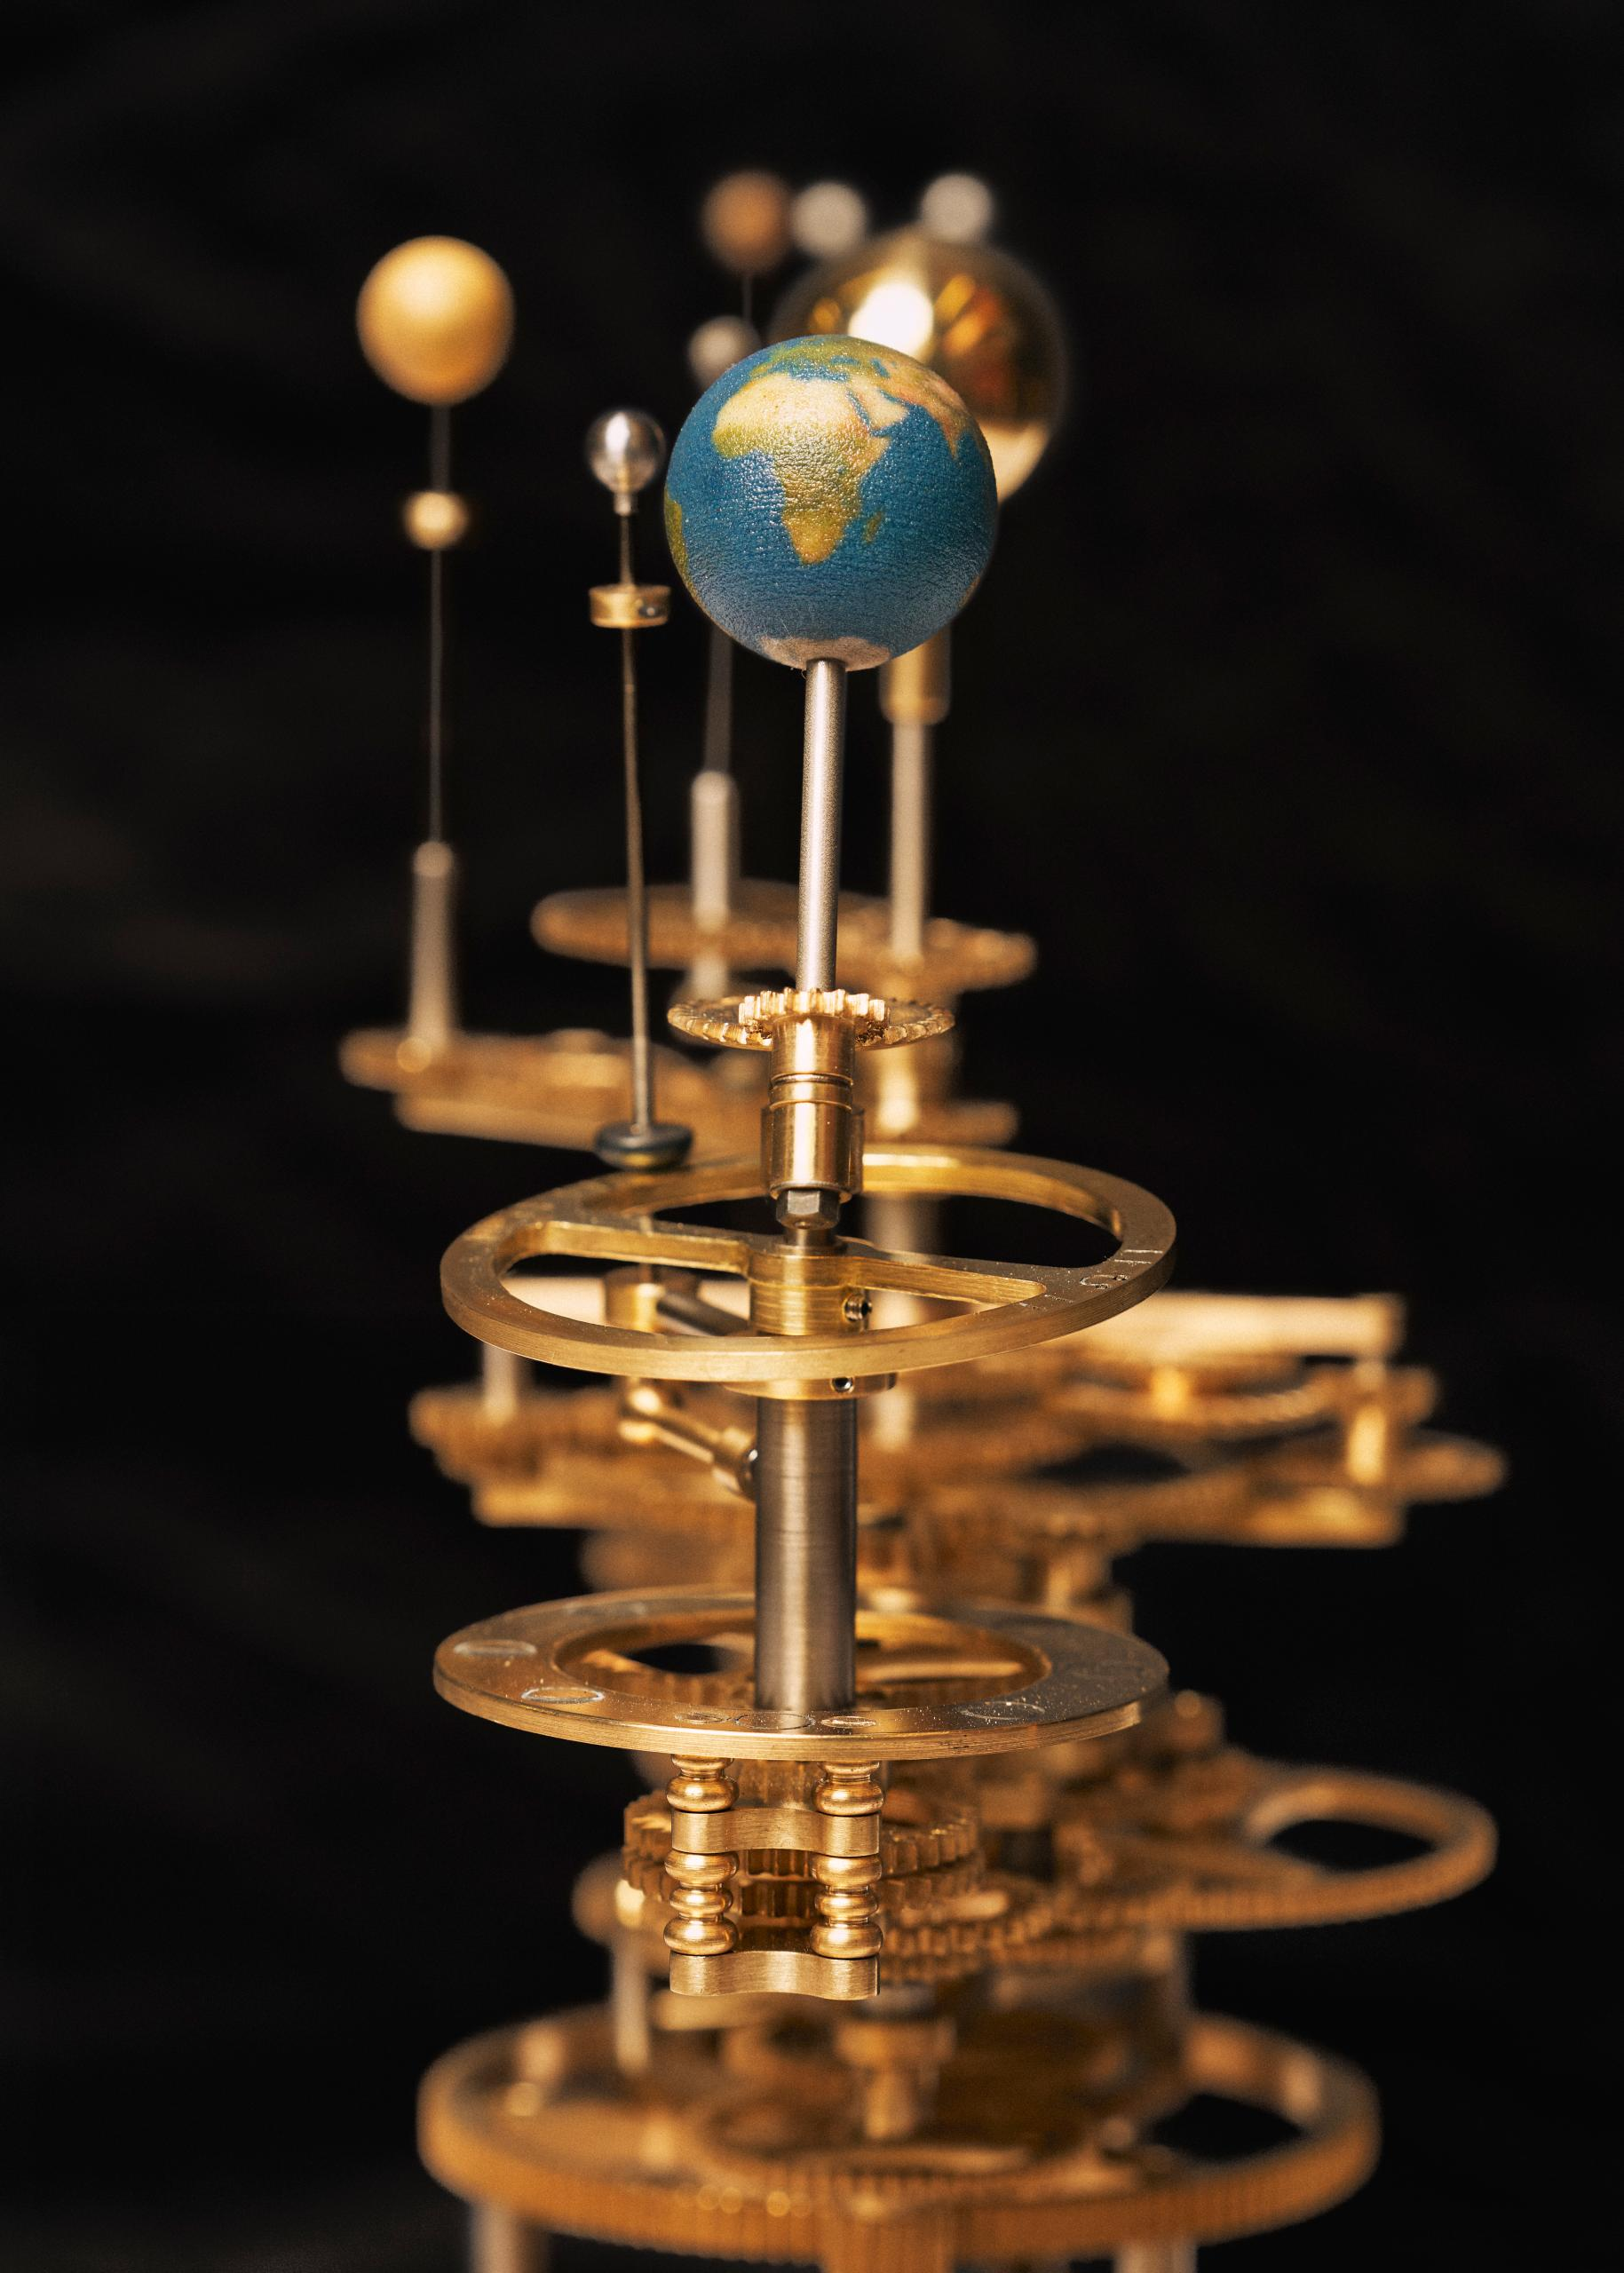 Orrery Staines and Son Artisans Marco Kesseler©Michelangelo Foundation